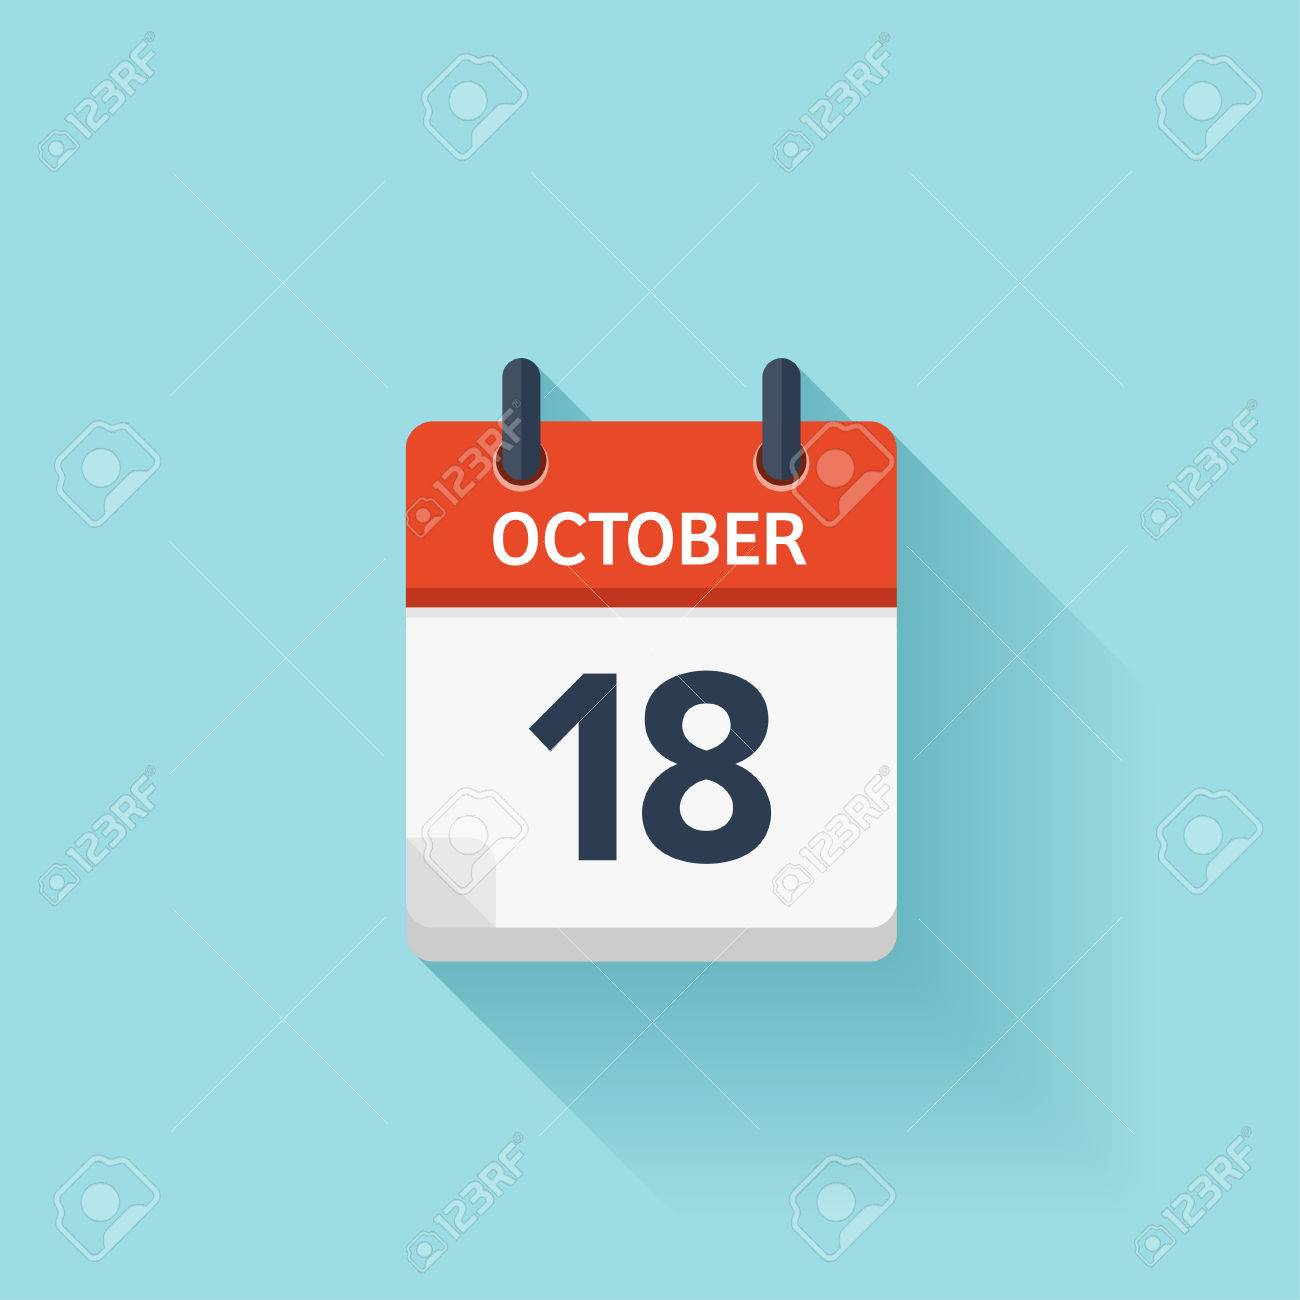 October 18 . Vector flat daily calendar icon. Date and time, day, month. Holiday. - 54048368